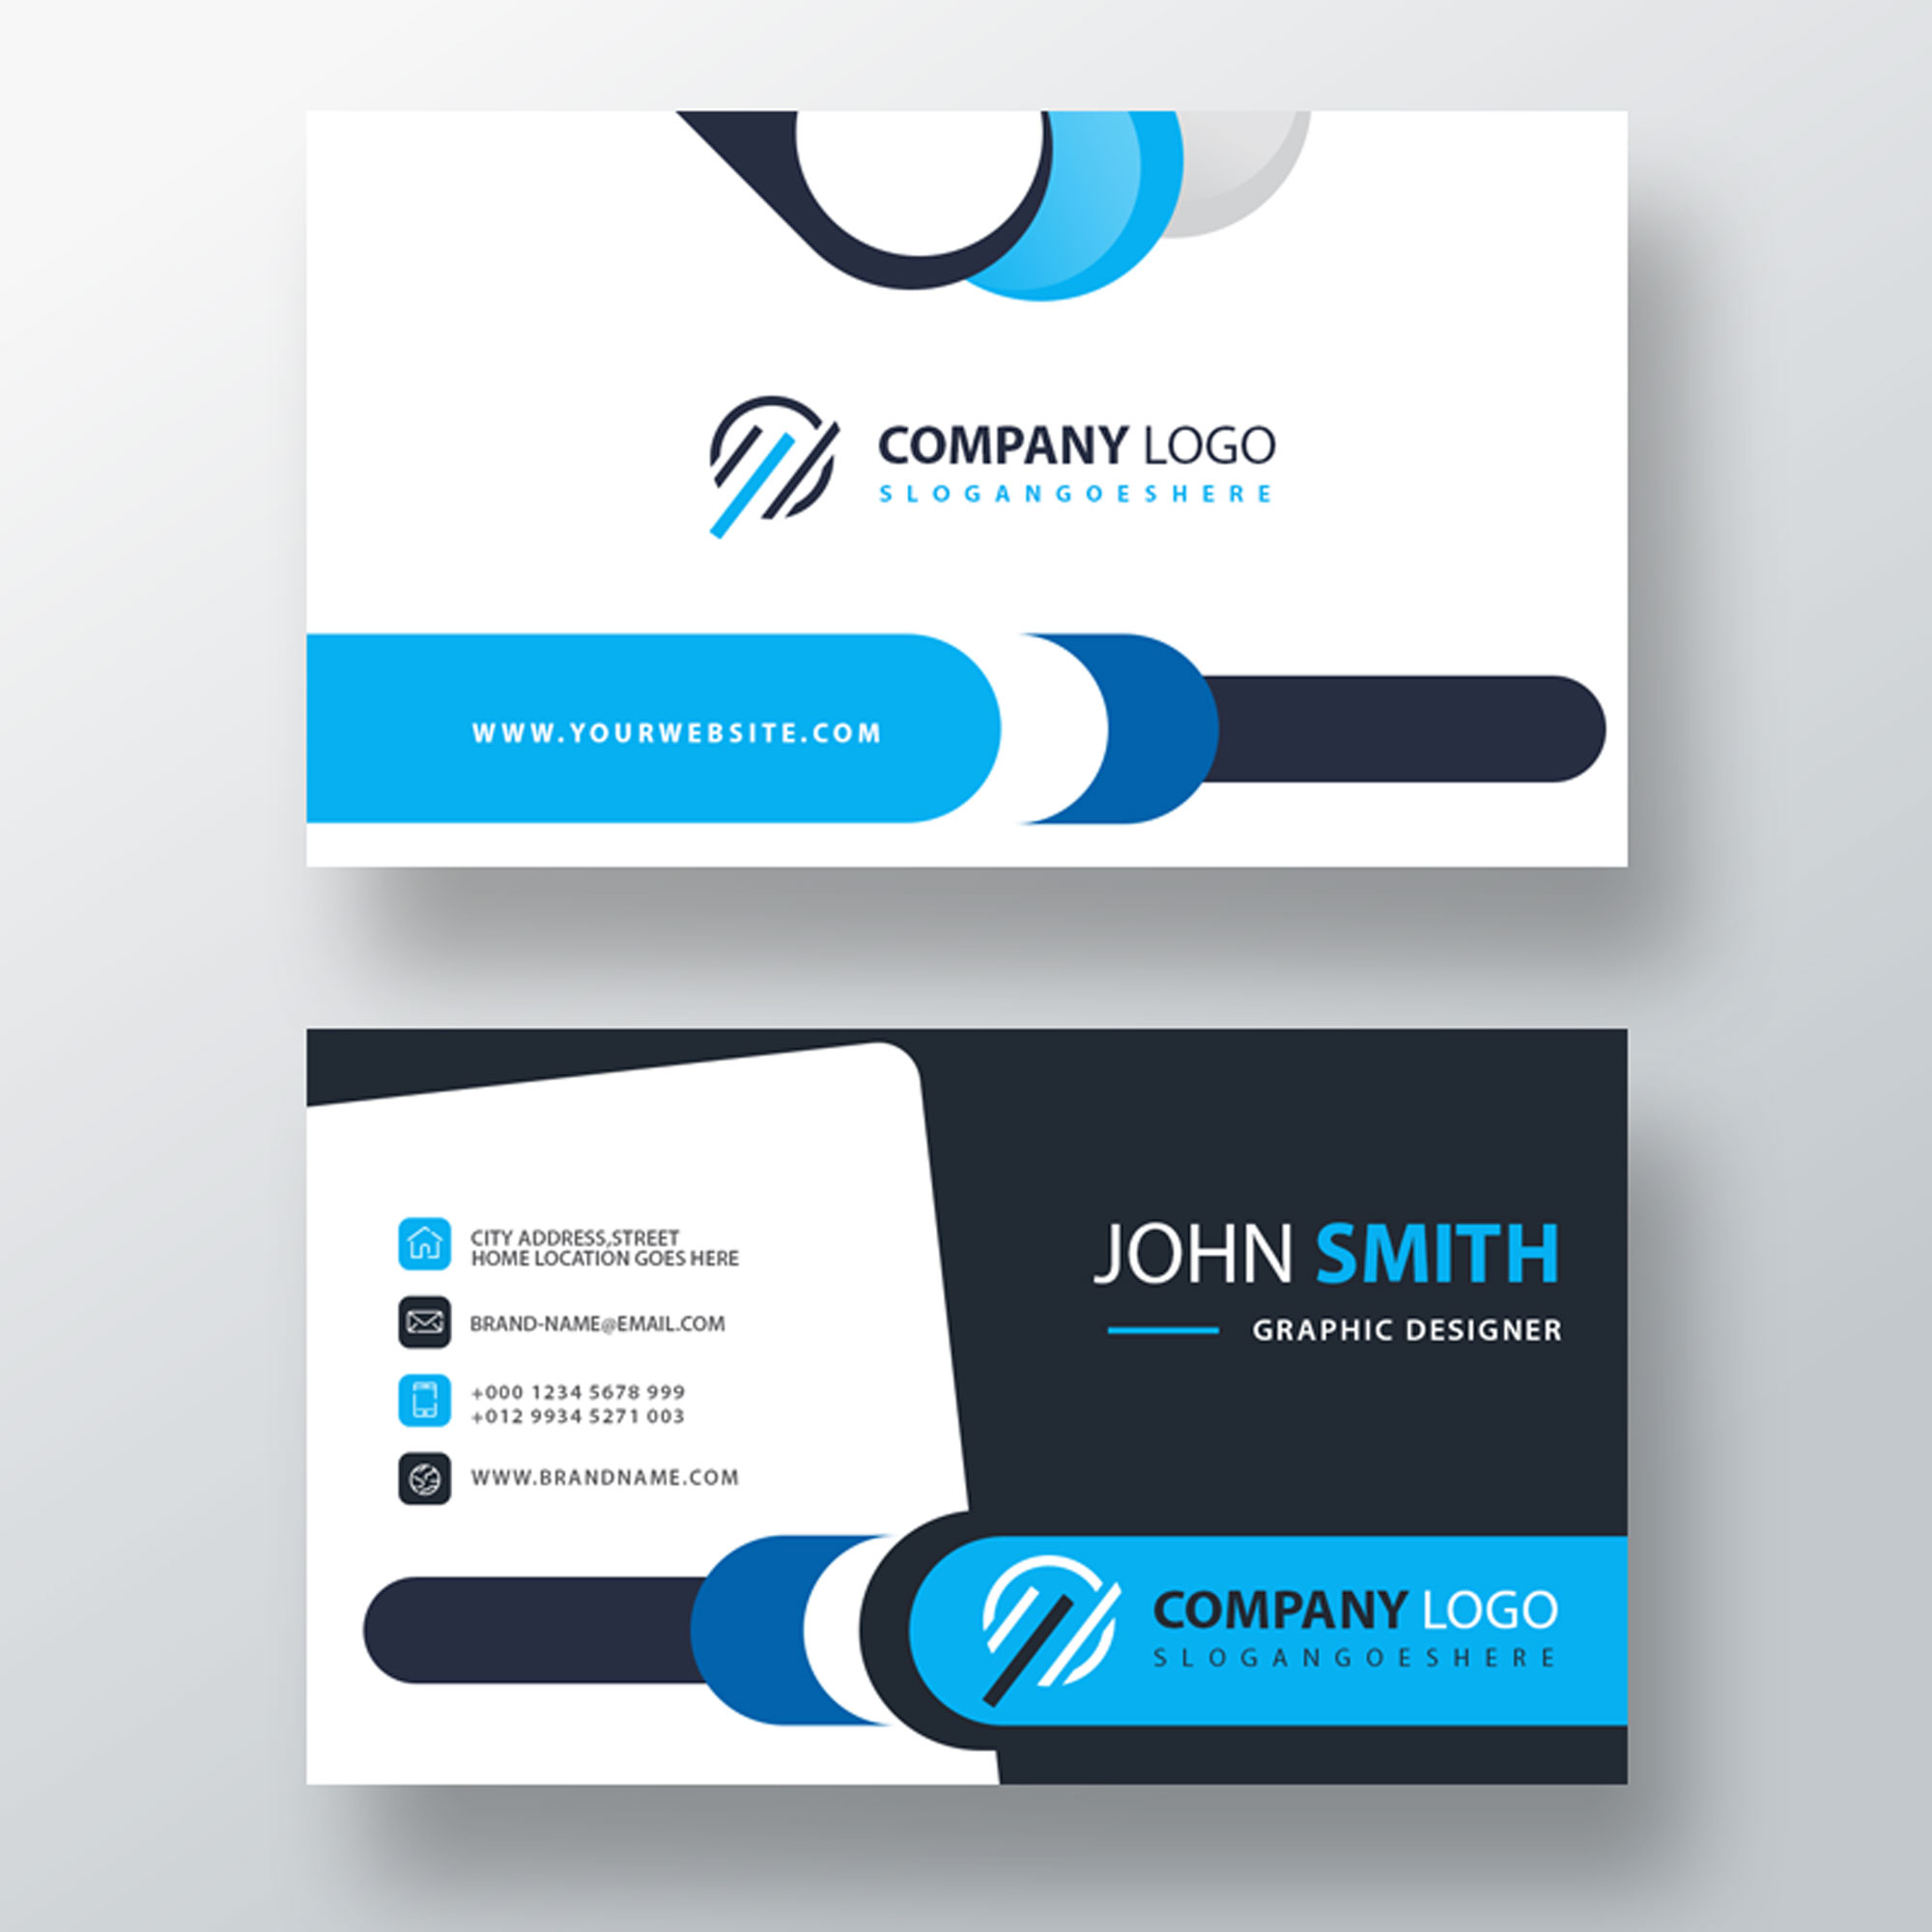 Create Business Card Design that attracts